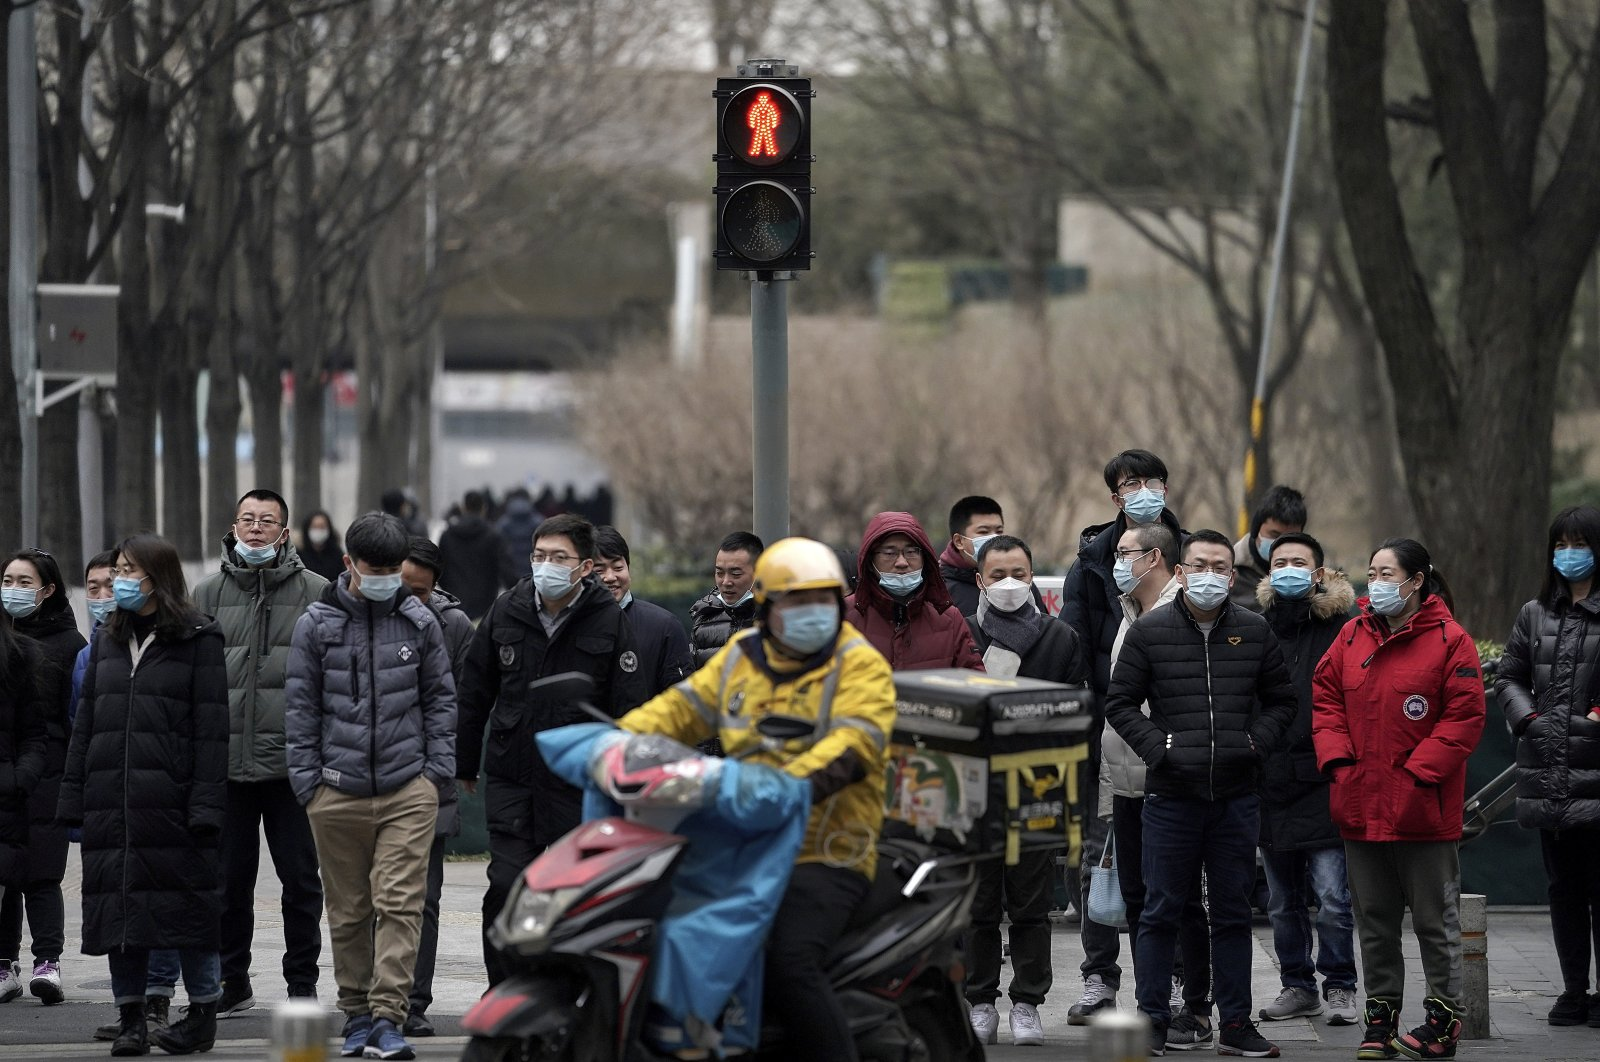 A food delivery worker and office workers wearing face masks to protect themselves from the coronavirus wait to cross a street in Beijing, China, Jan. 14, 2021. (AP Photo)